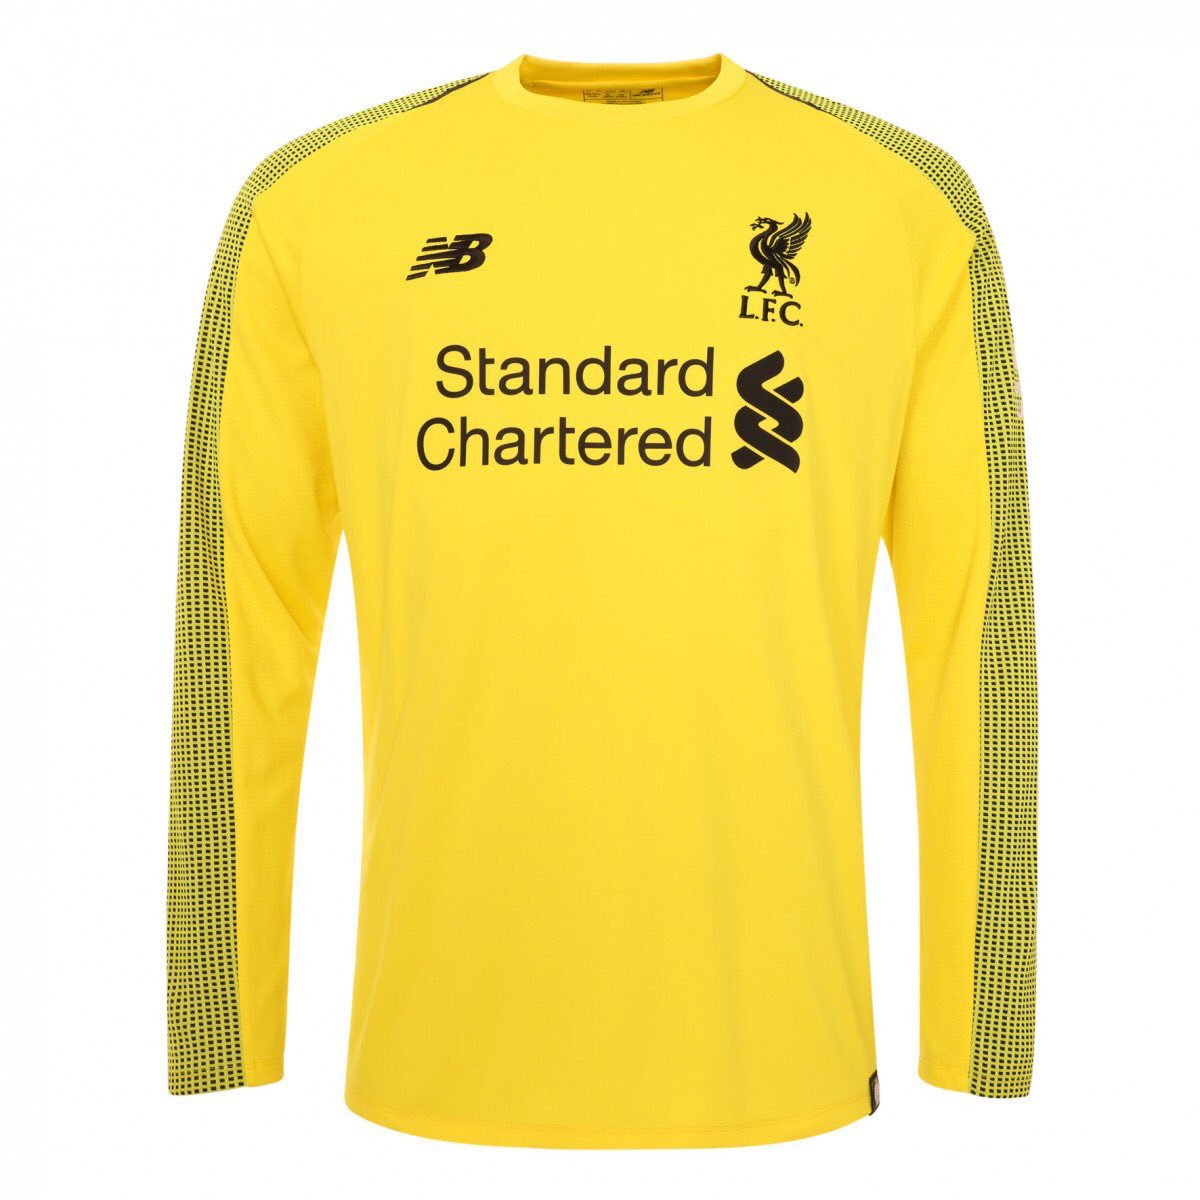 fc06fa85e Liverpool Football Club 2018 19 Goalkeeper Home Kit.pic.twitter .com aahXkr7FwJ